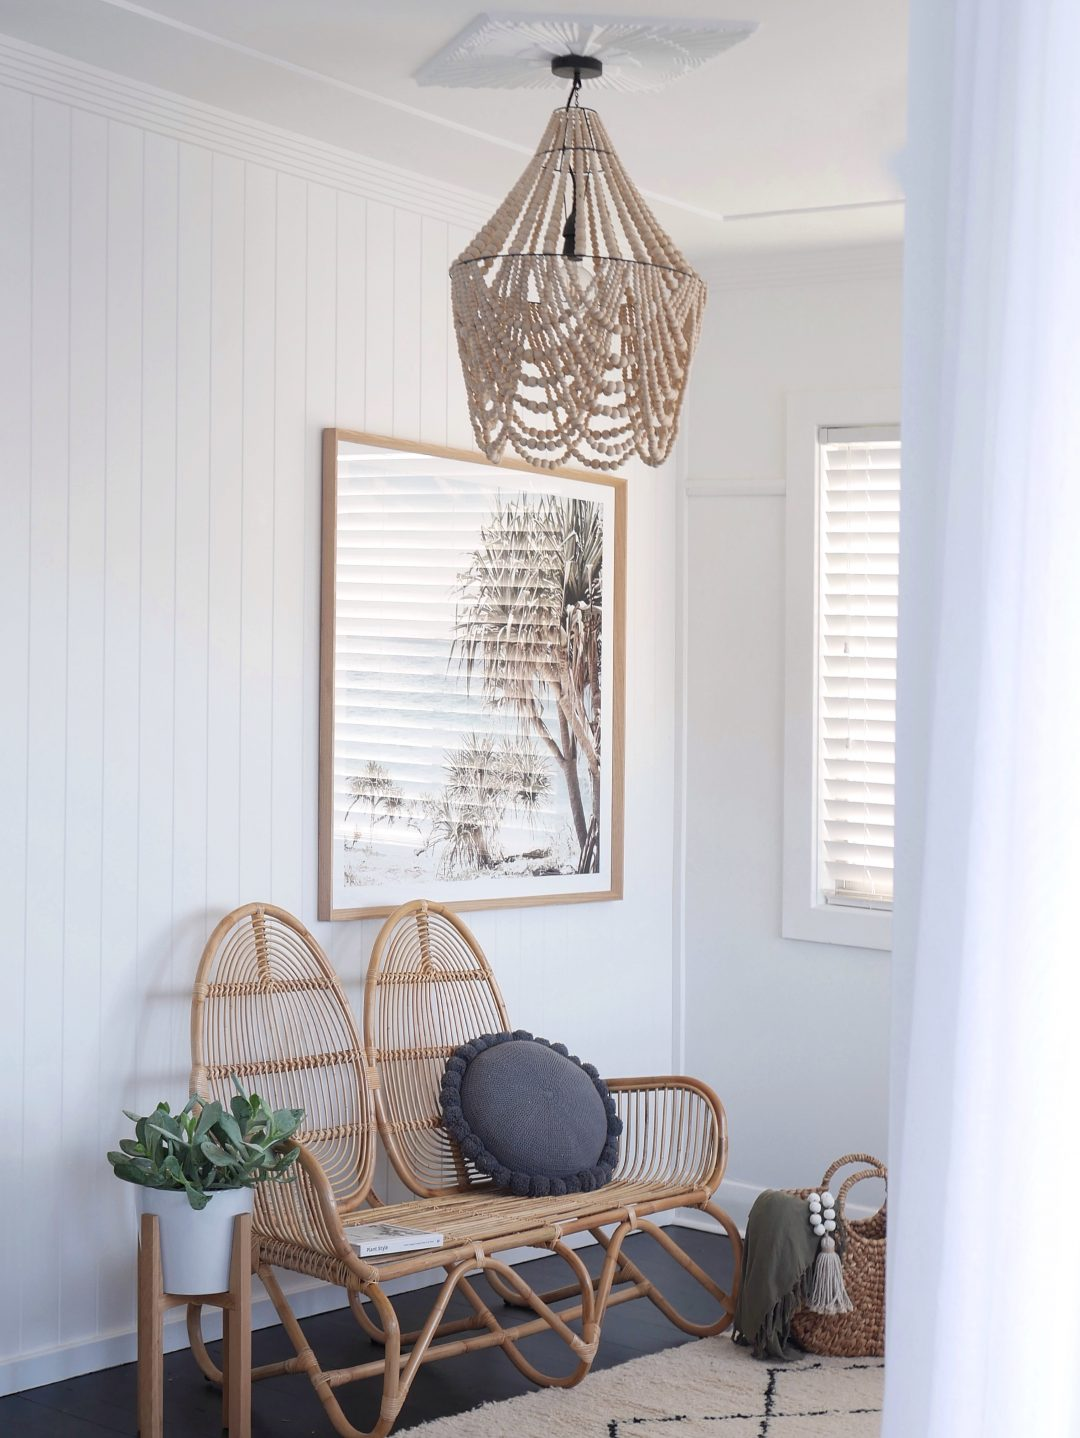 Wicker chair and pendant light